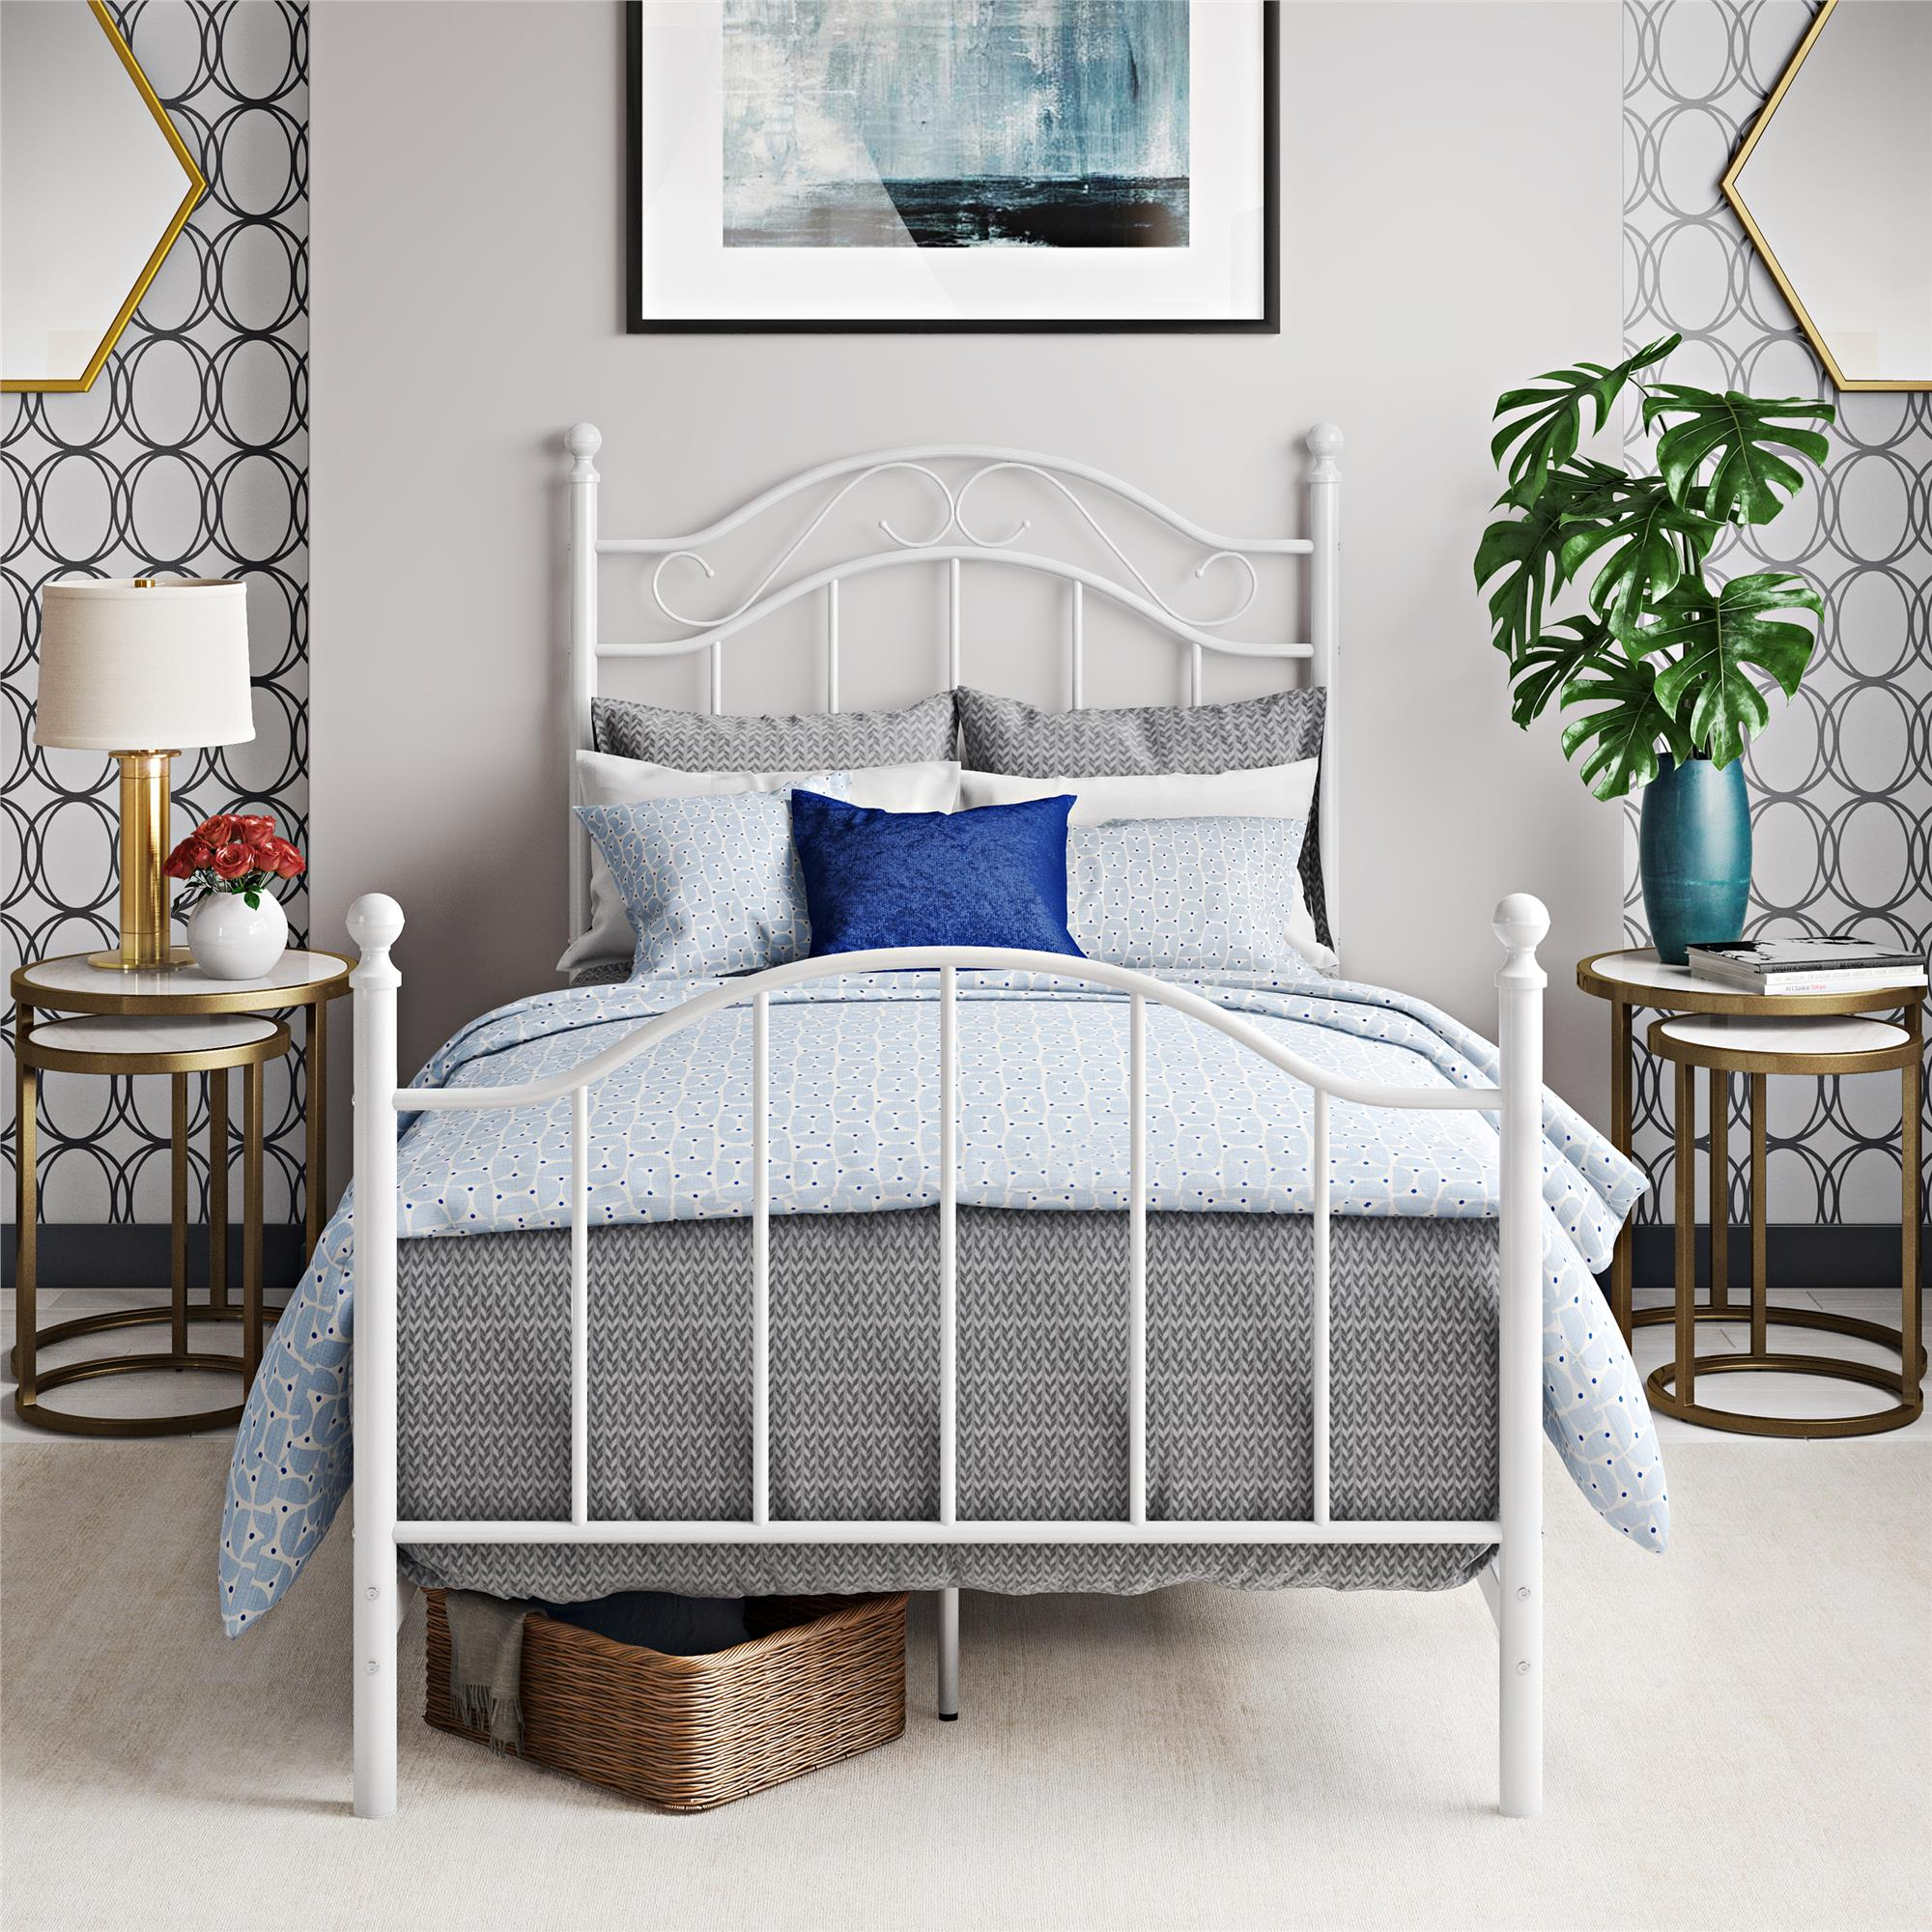 Mainstays Traditional Metal Bed, Twin, White, With Headboard